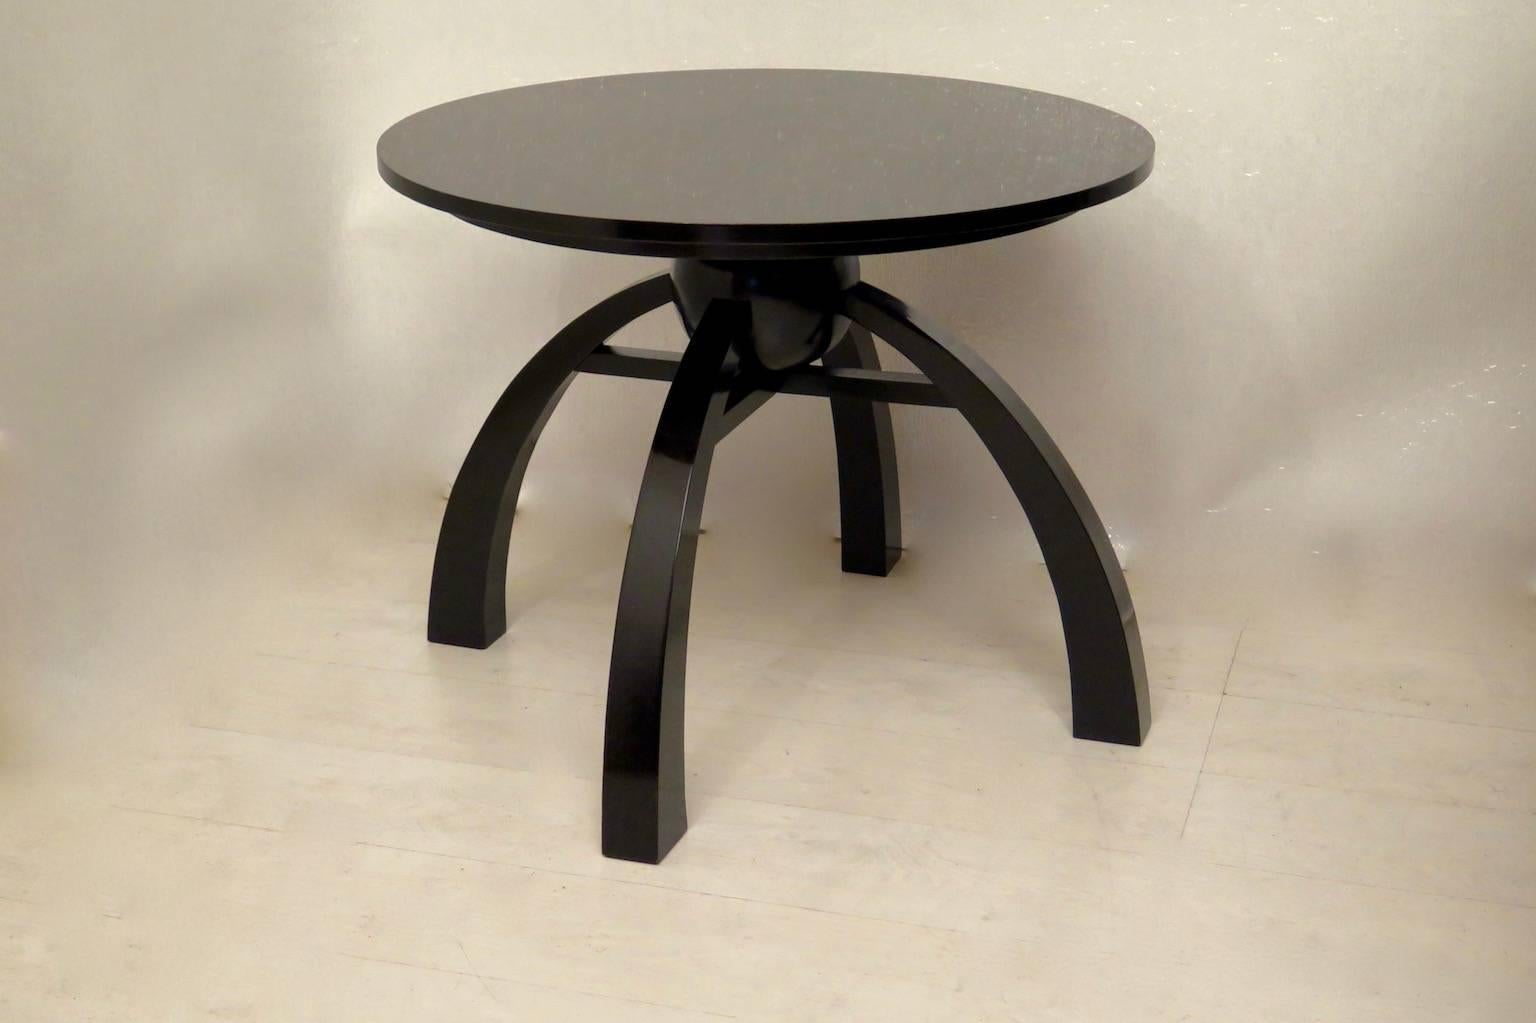 art deco round black shellac italian side table 1930 for sale